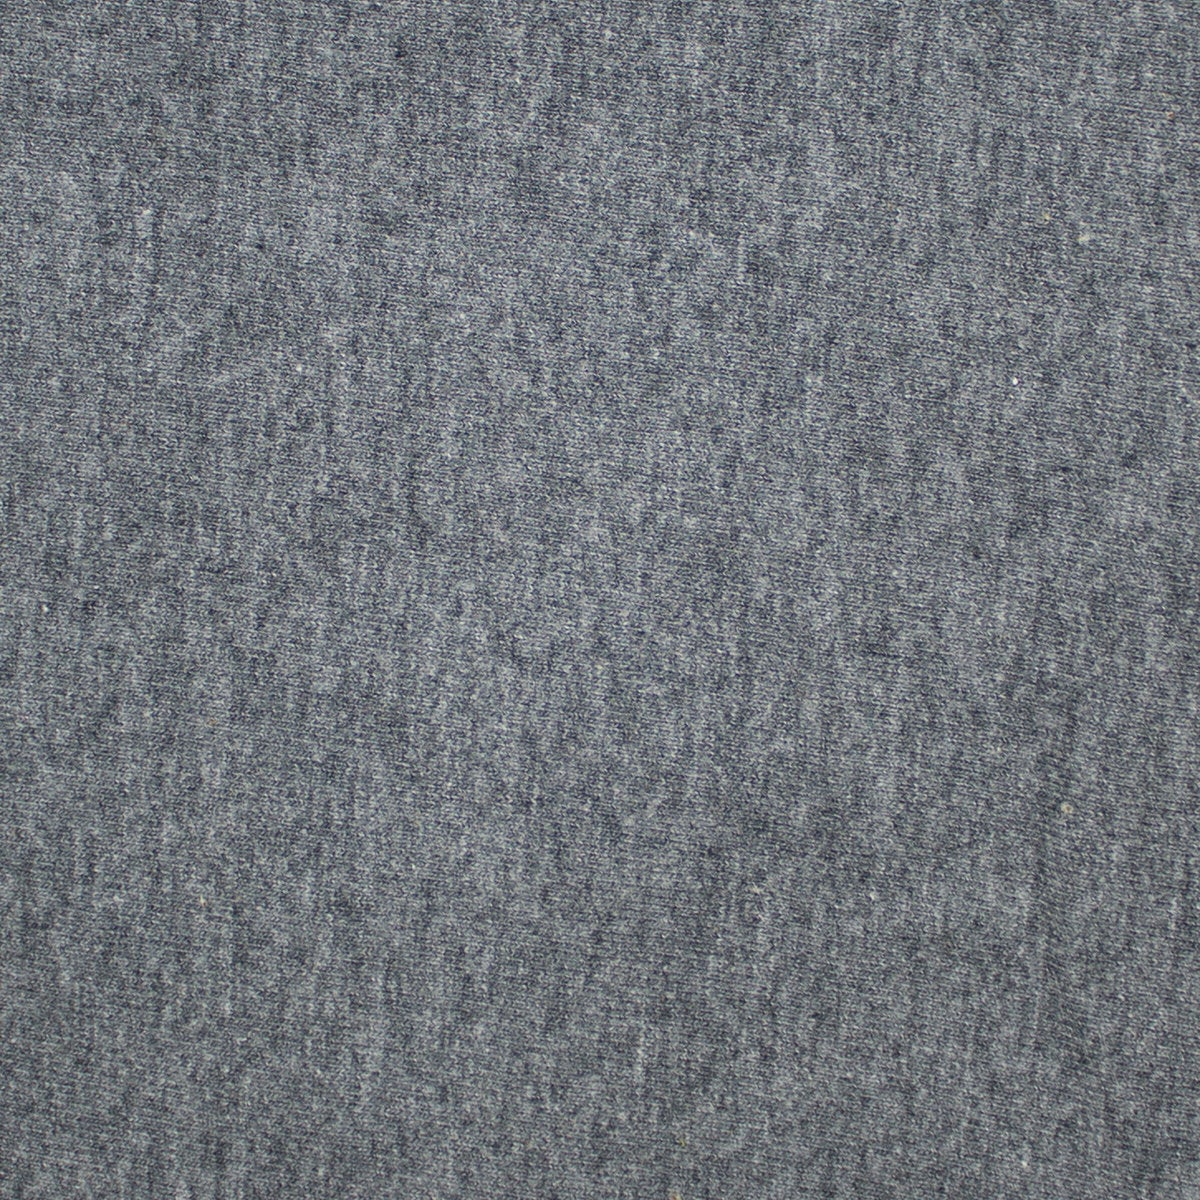 Solid Plain cotton mix Spandex Stretch Jersey Knit Dress Fabric. By the half metre. Teal, grey.